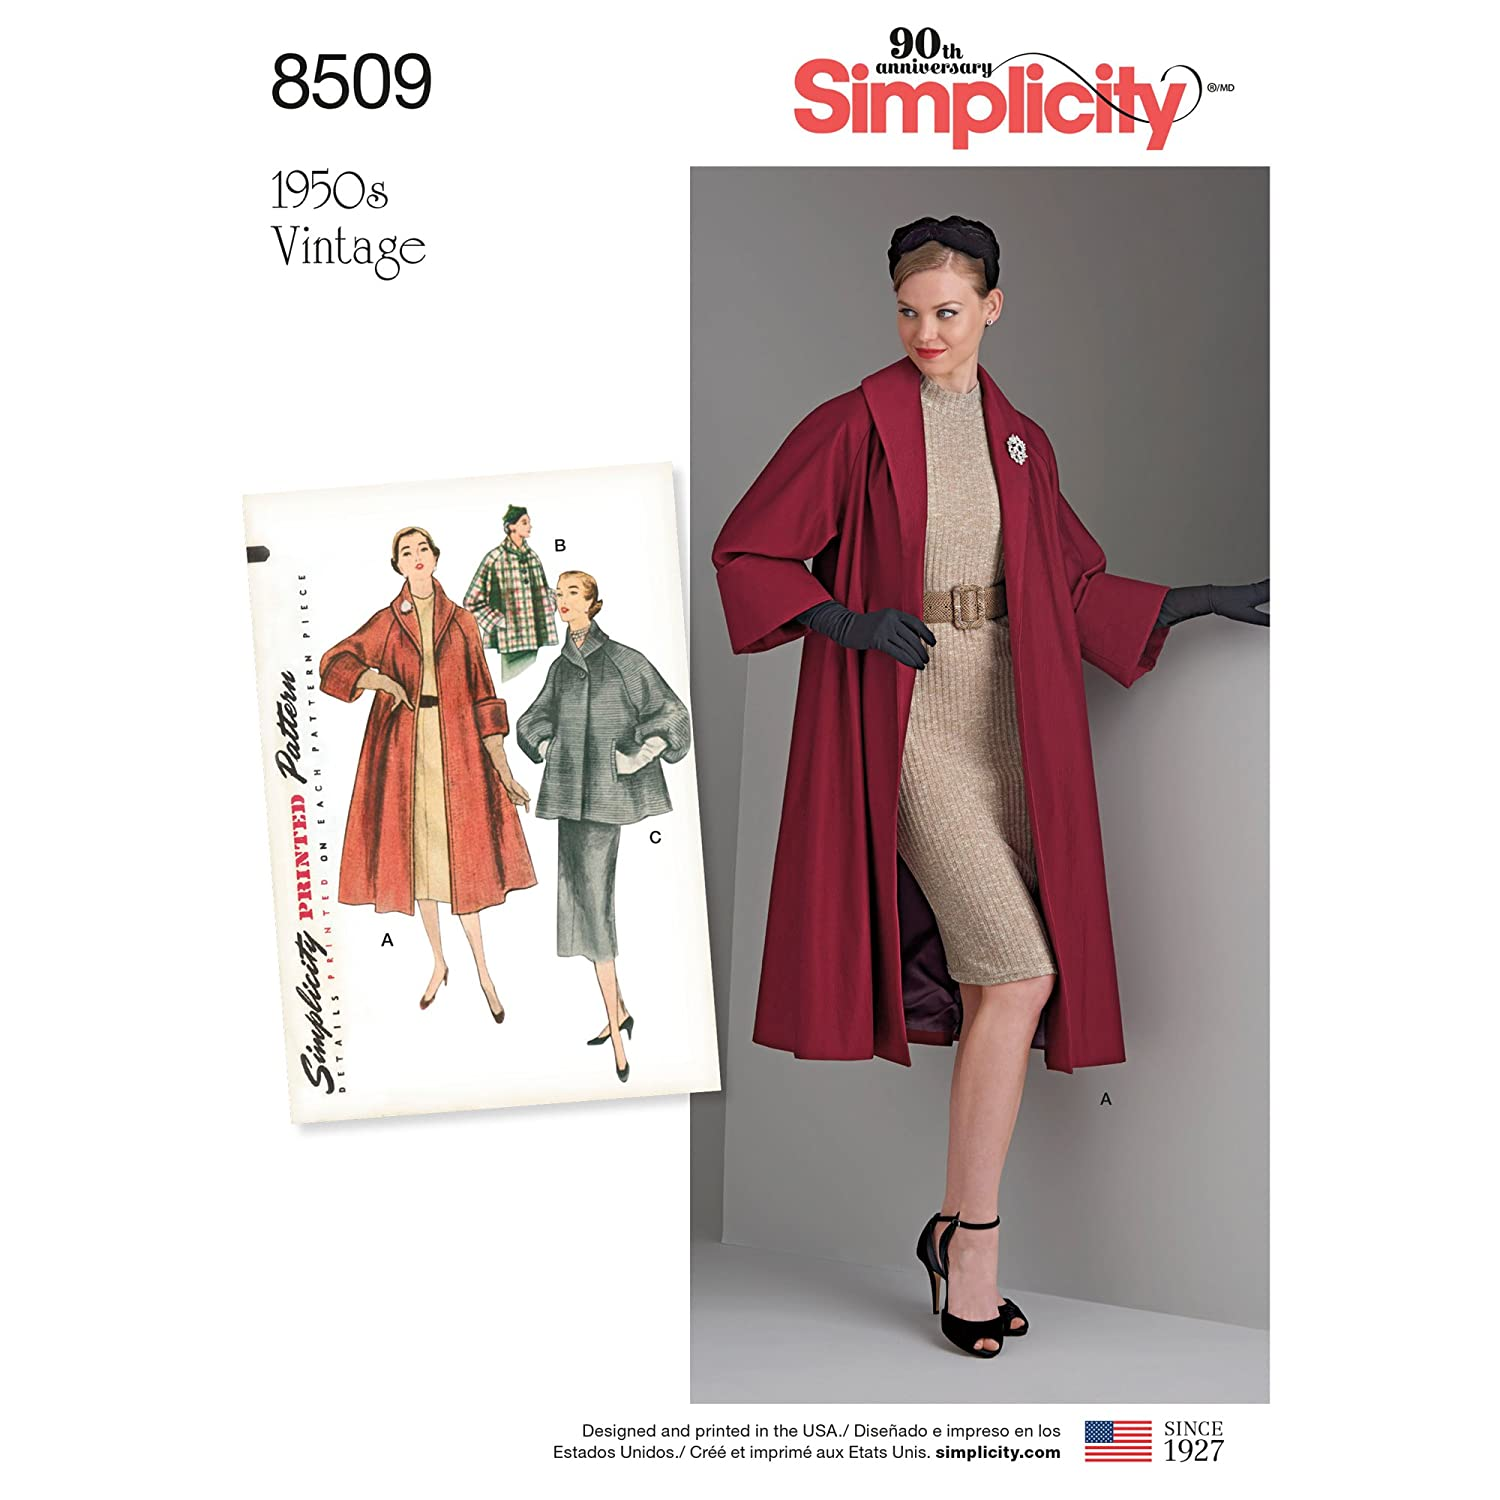 Vintage Coats & Jackets | Retro Coats and Jackets Simplicity Creative Patterns US8509R5 Sewing Tops/Vest/Jkts/Coats R5 (14-16-18-20-22) $10.01 AT vintagedancer.com